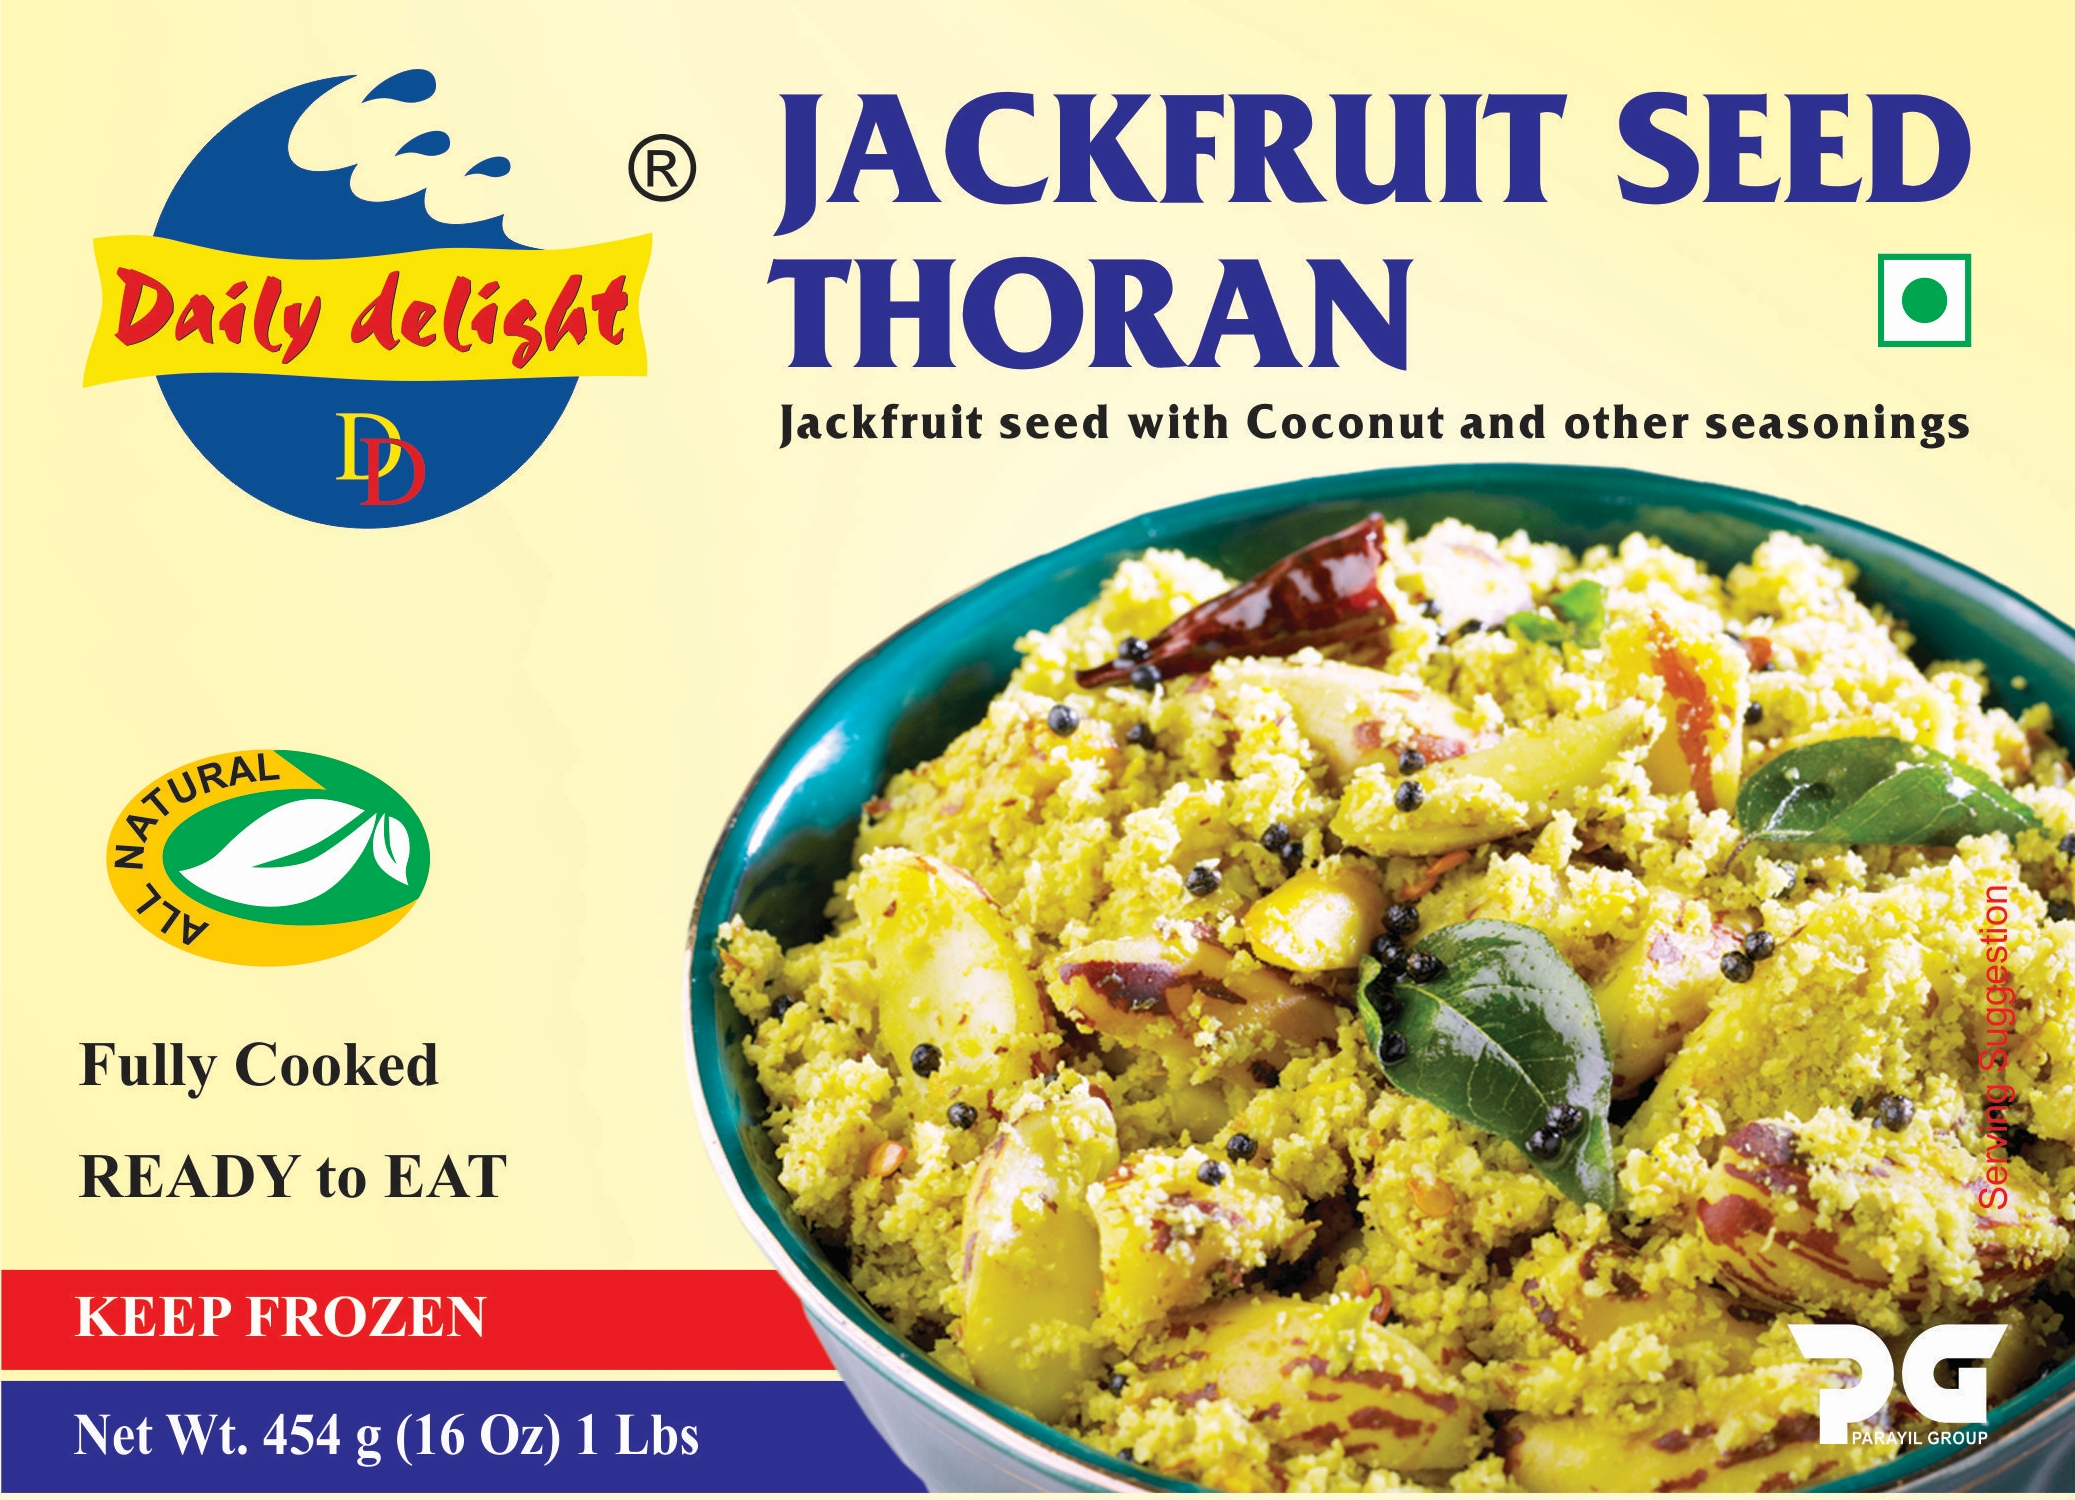 Daily Delight Jackfruit Seed Thoran